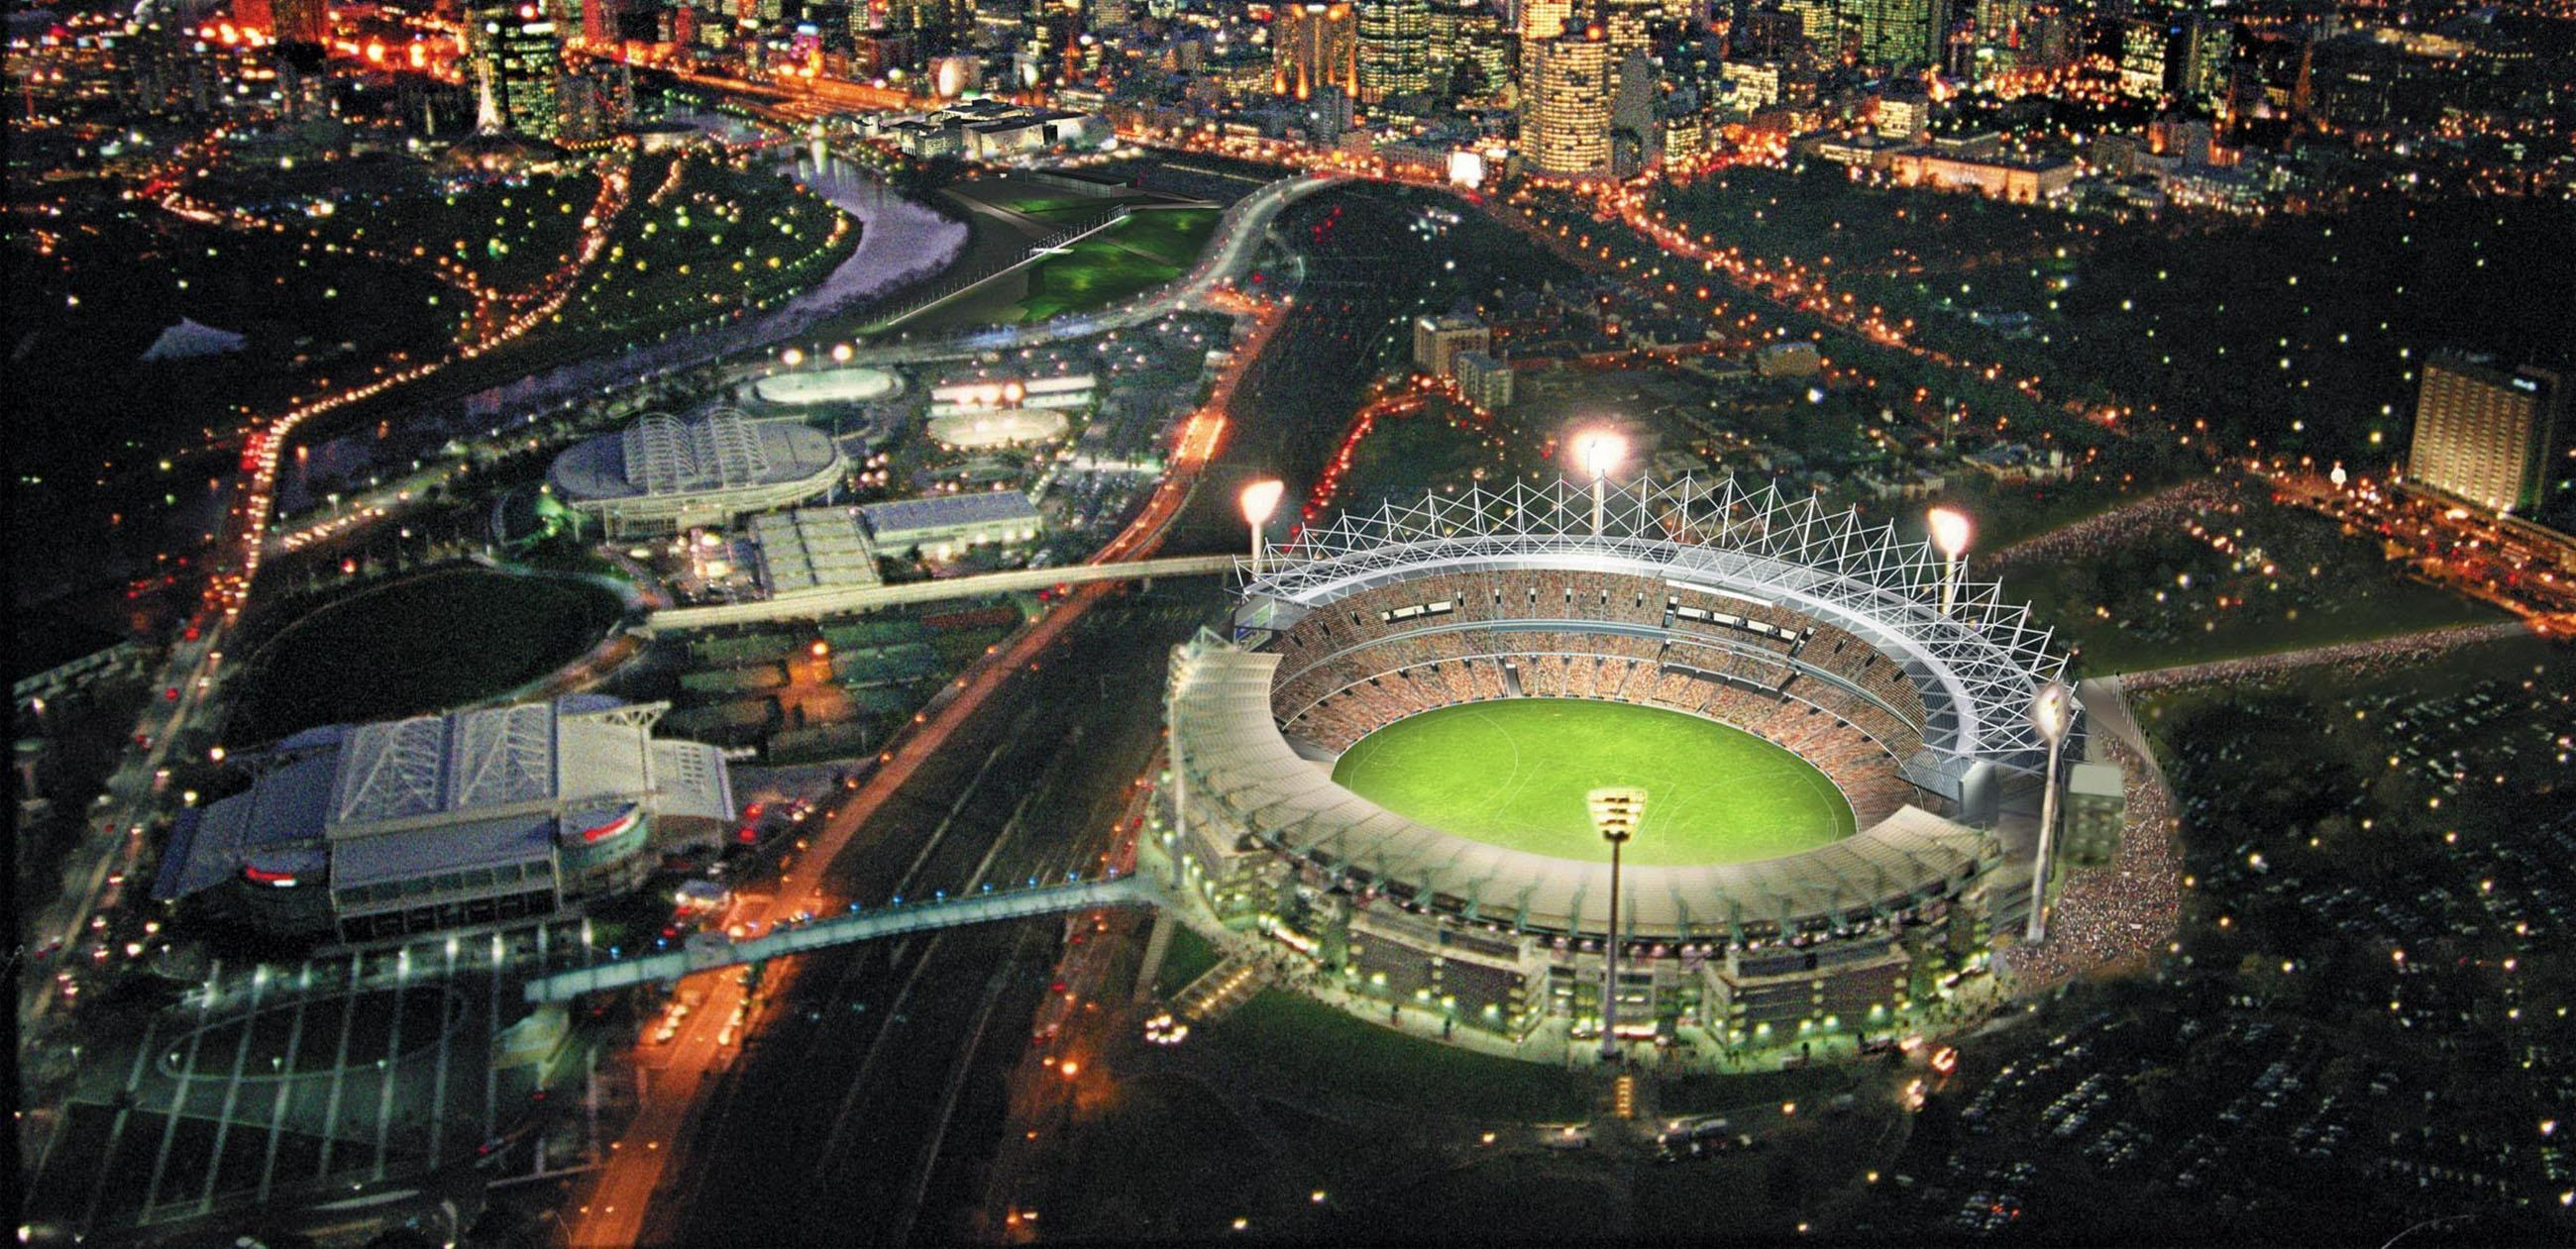 The Melbourne Cricket Ground,things to do in Australia